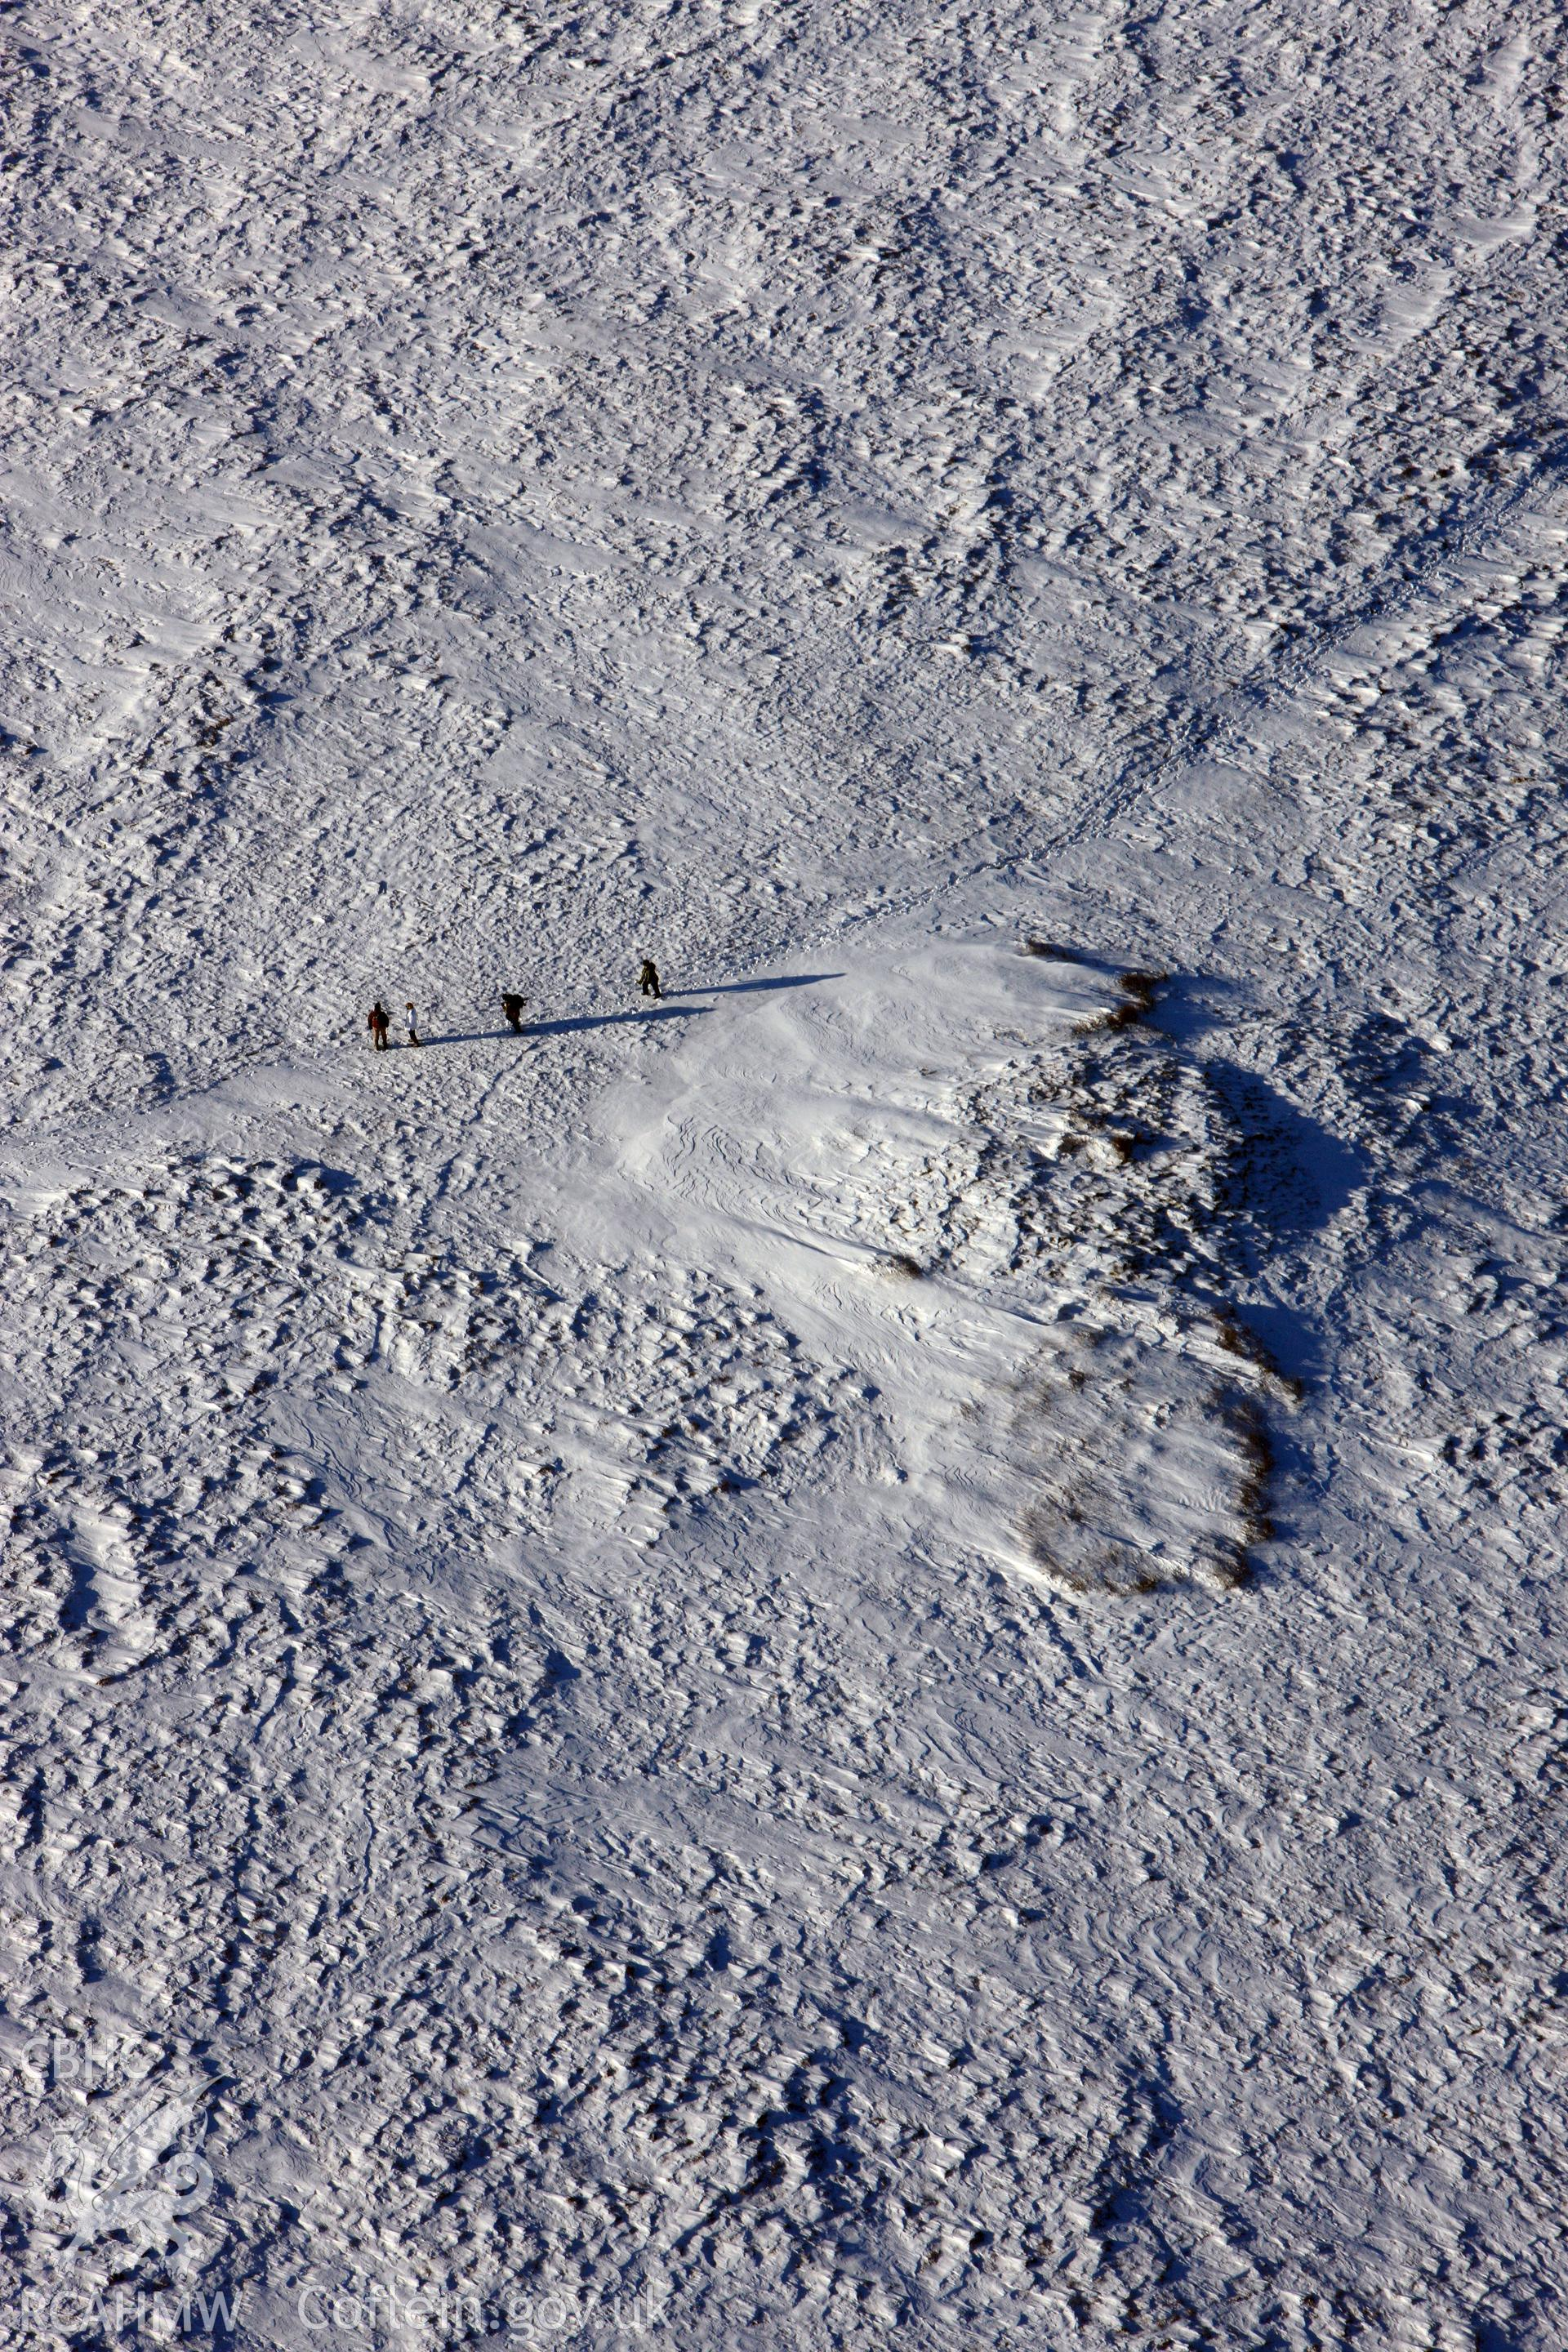 RCAHMW colour oblique aerial photograph of Foel Cwmcerwyn cairn under snow, by Toby Driver, 01/12/2010.